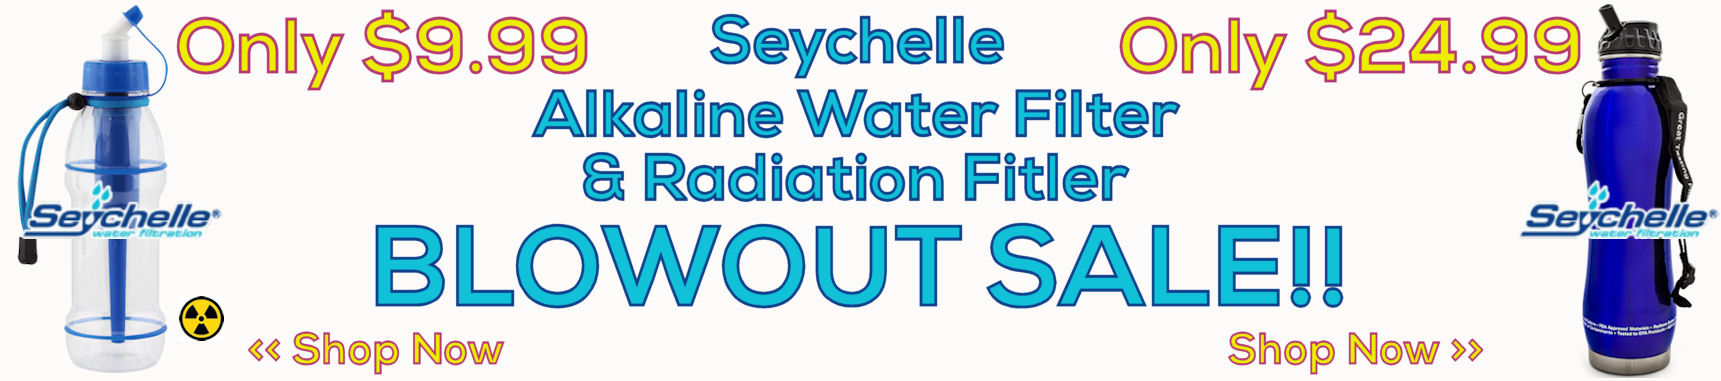 Seychelle Blue Stainless Alkaline Water Filter Bottle and Blue Radiation Sports Bottle Sale